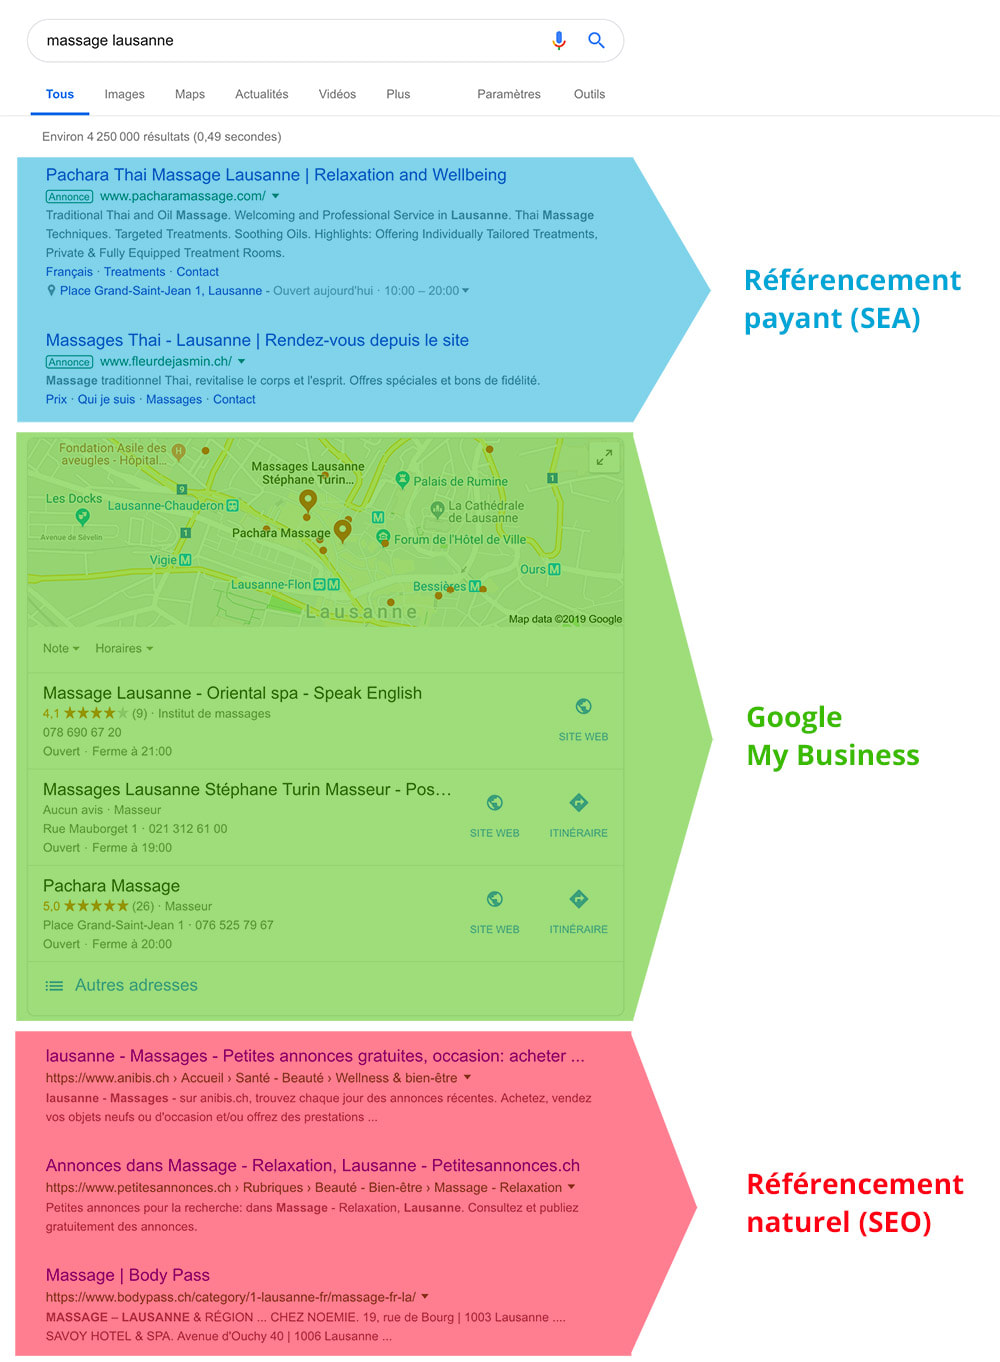 Différence entre SEO SEA Google My Business